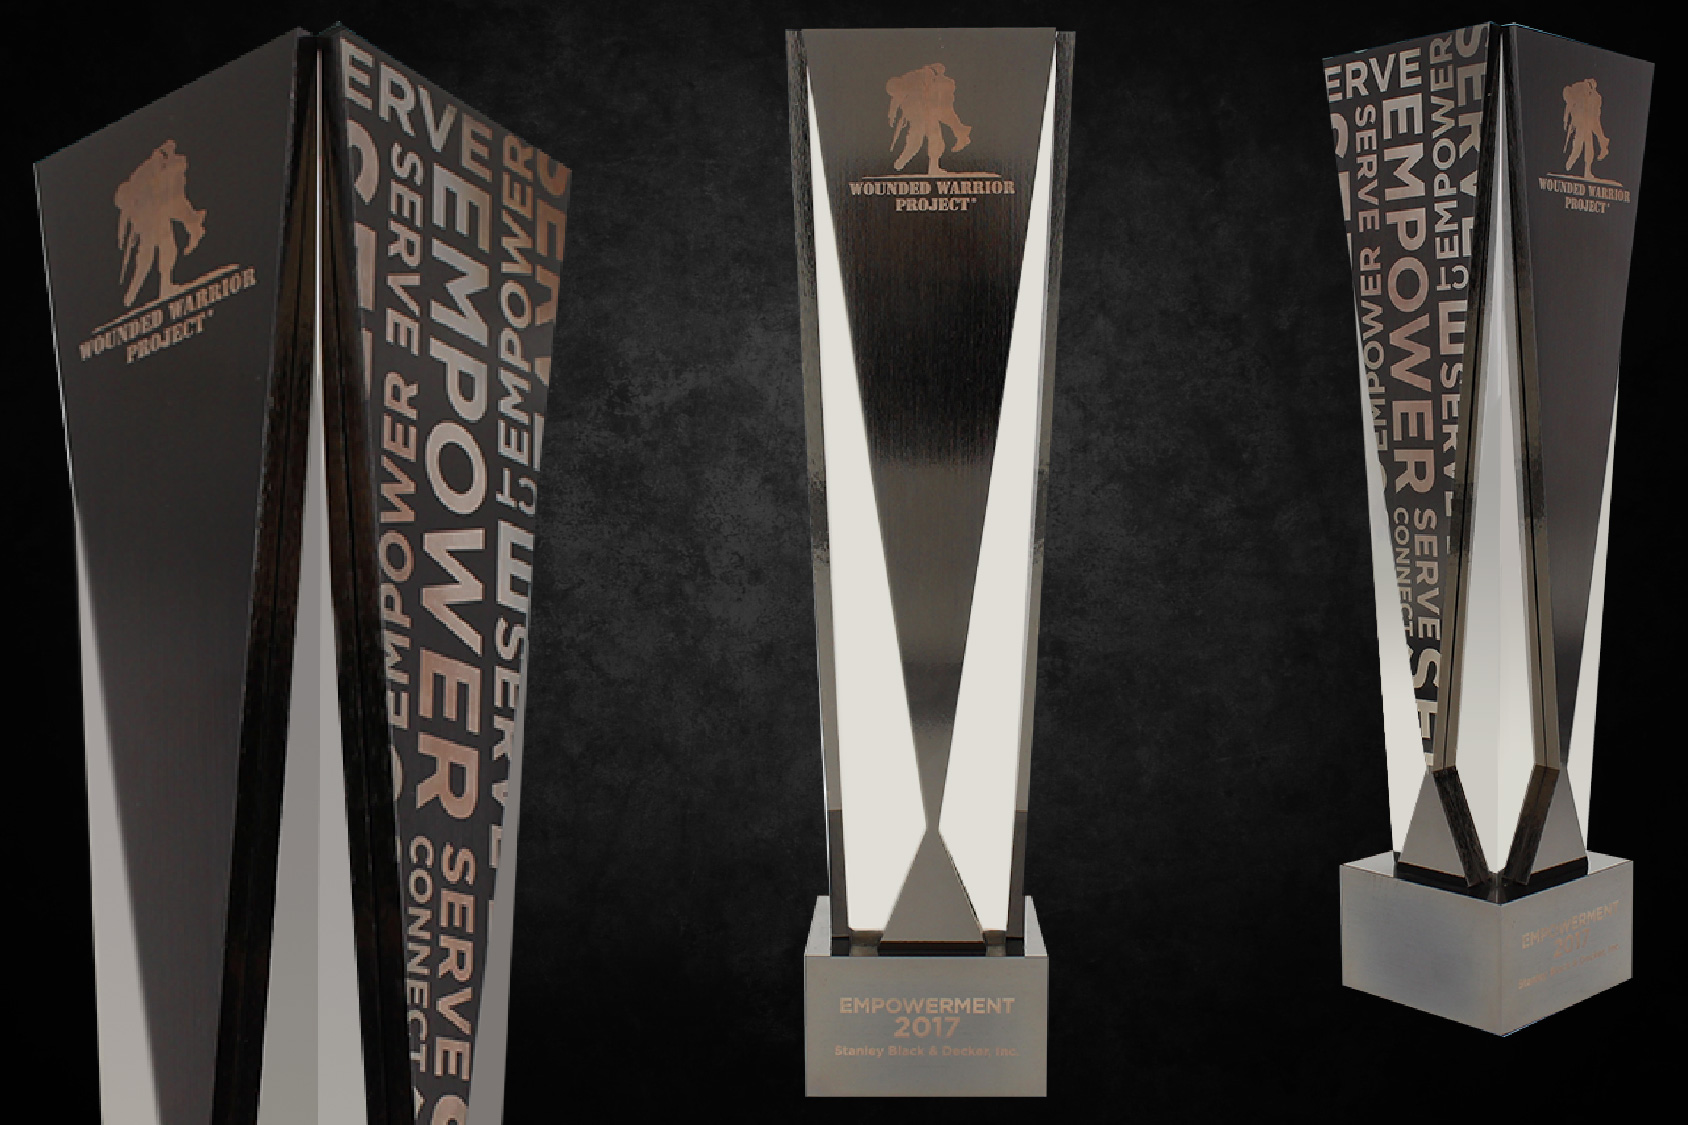 Wounded Warrior Project Empowerment Award trophy